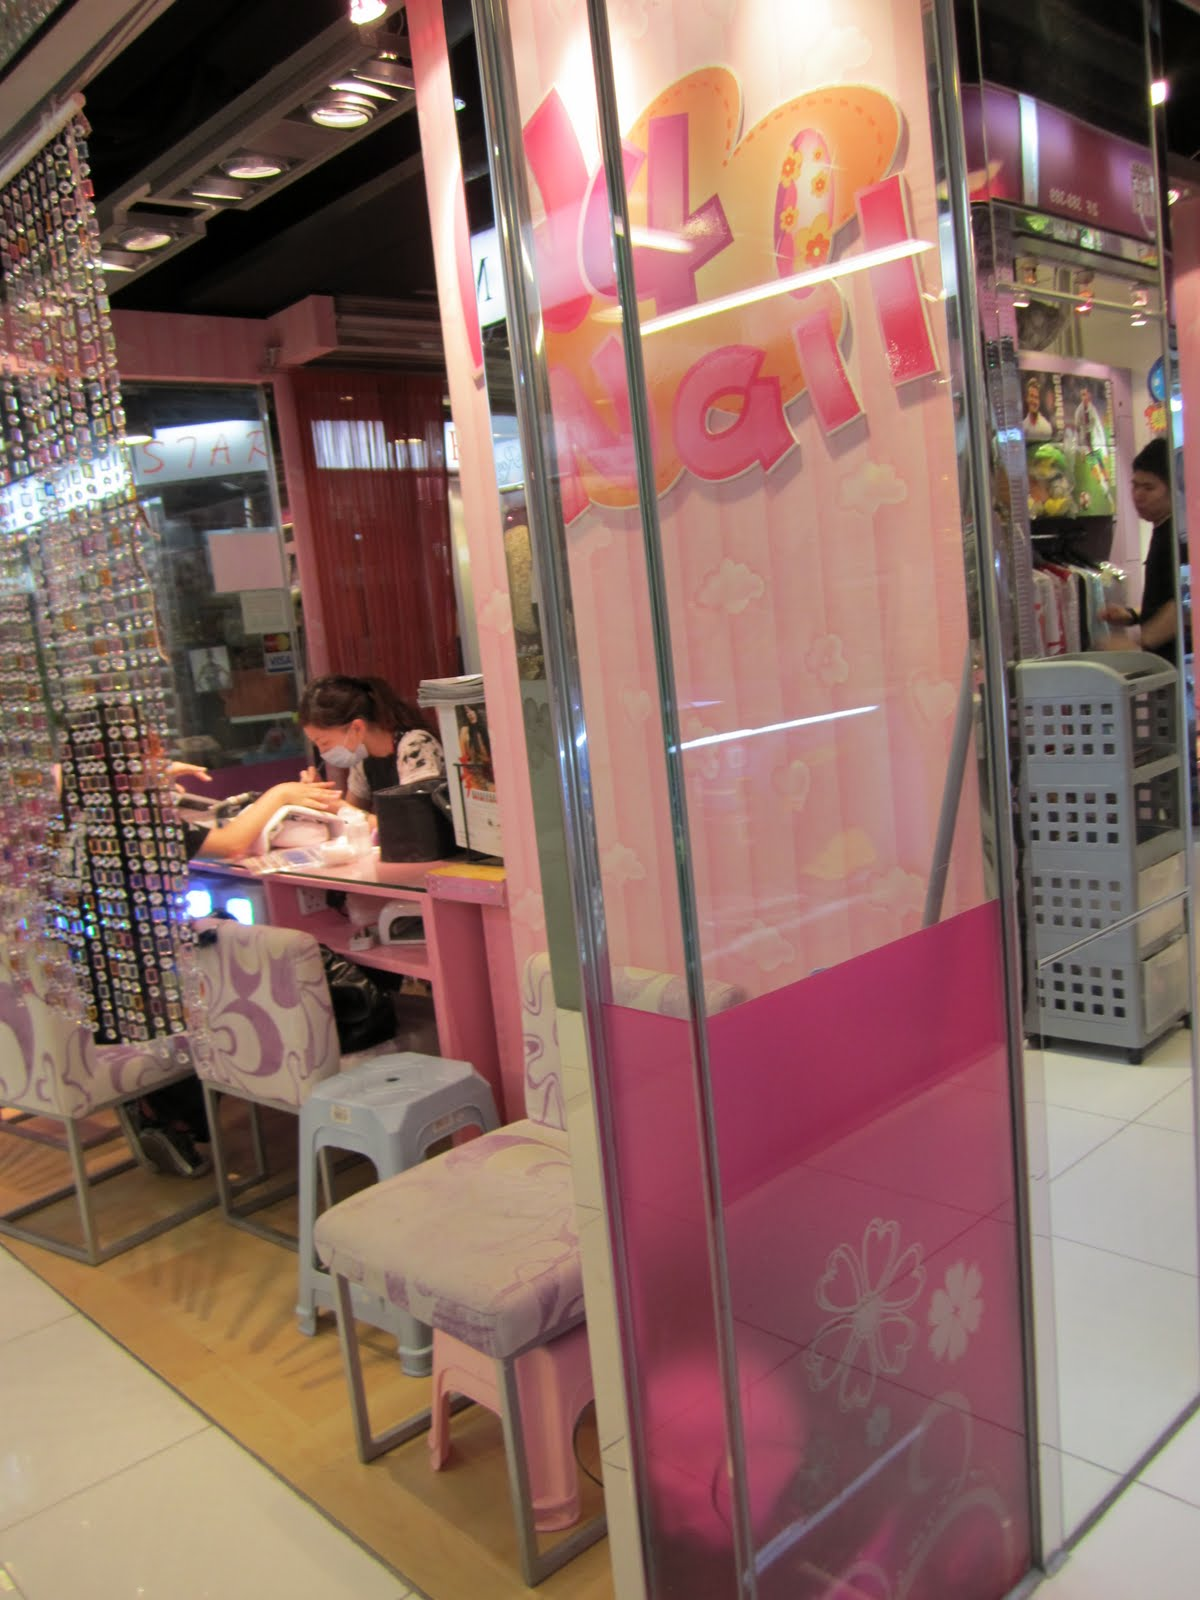 Create your own beauty with frulein38 may 2010 nail art shops can only be found in smaller shopping centre or private buildings in hong kong that means doing nail art is not yet very common in hong prinsesfo Images